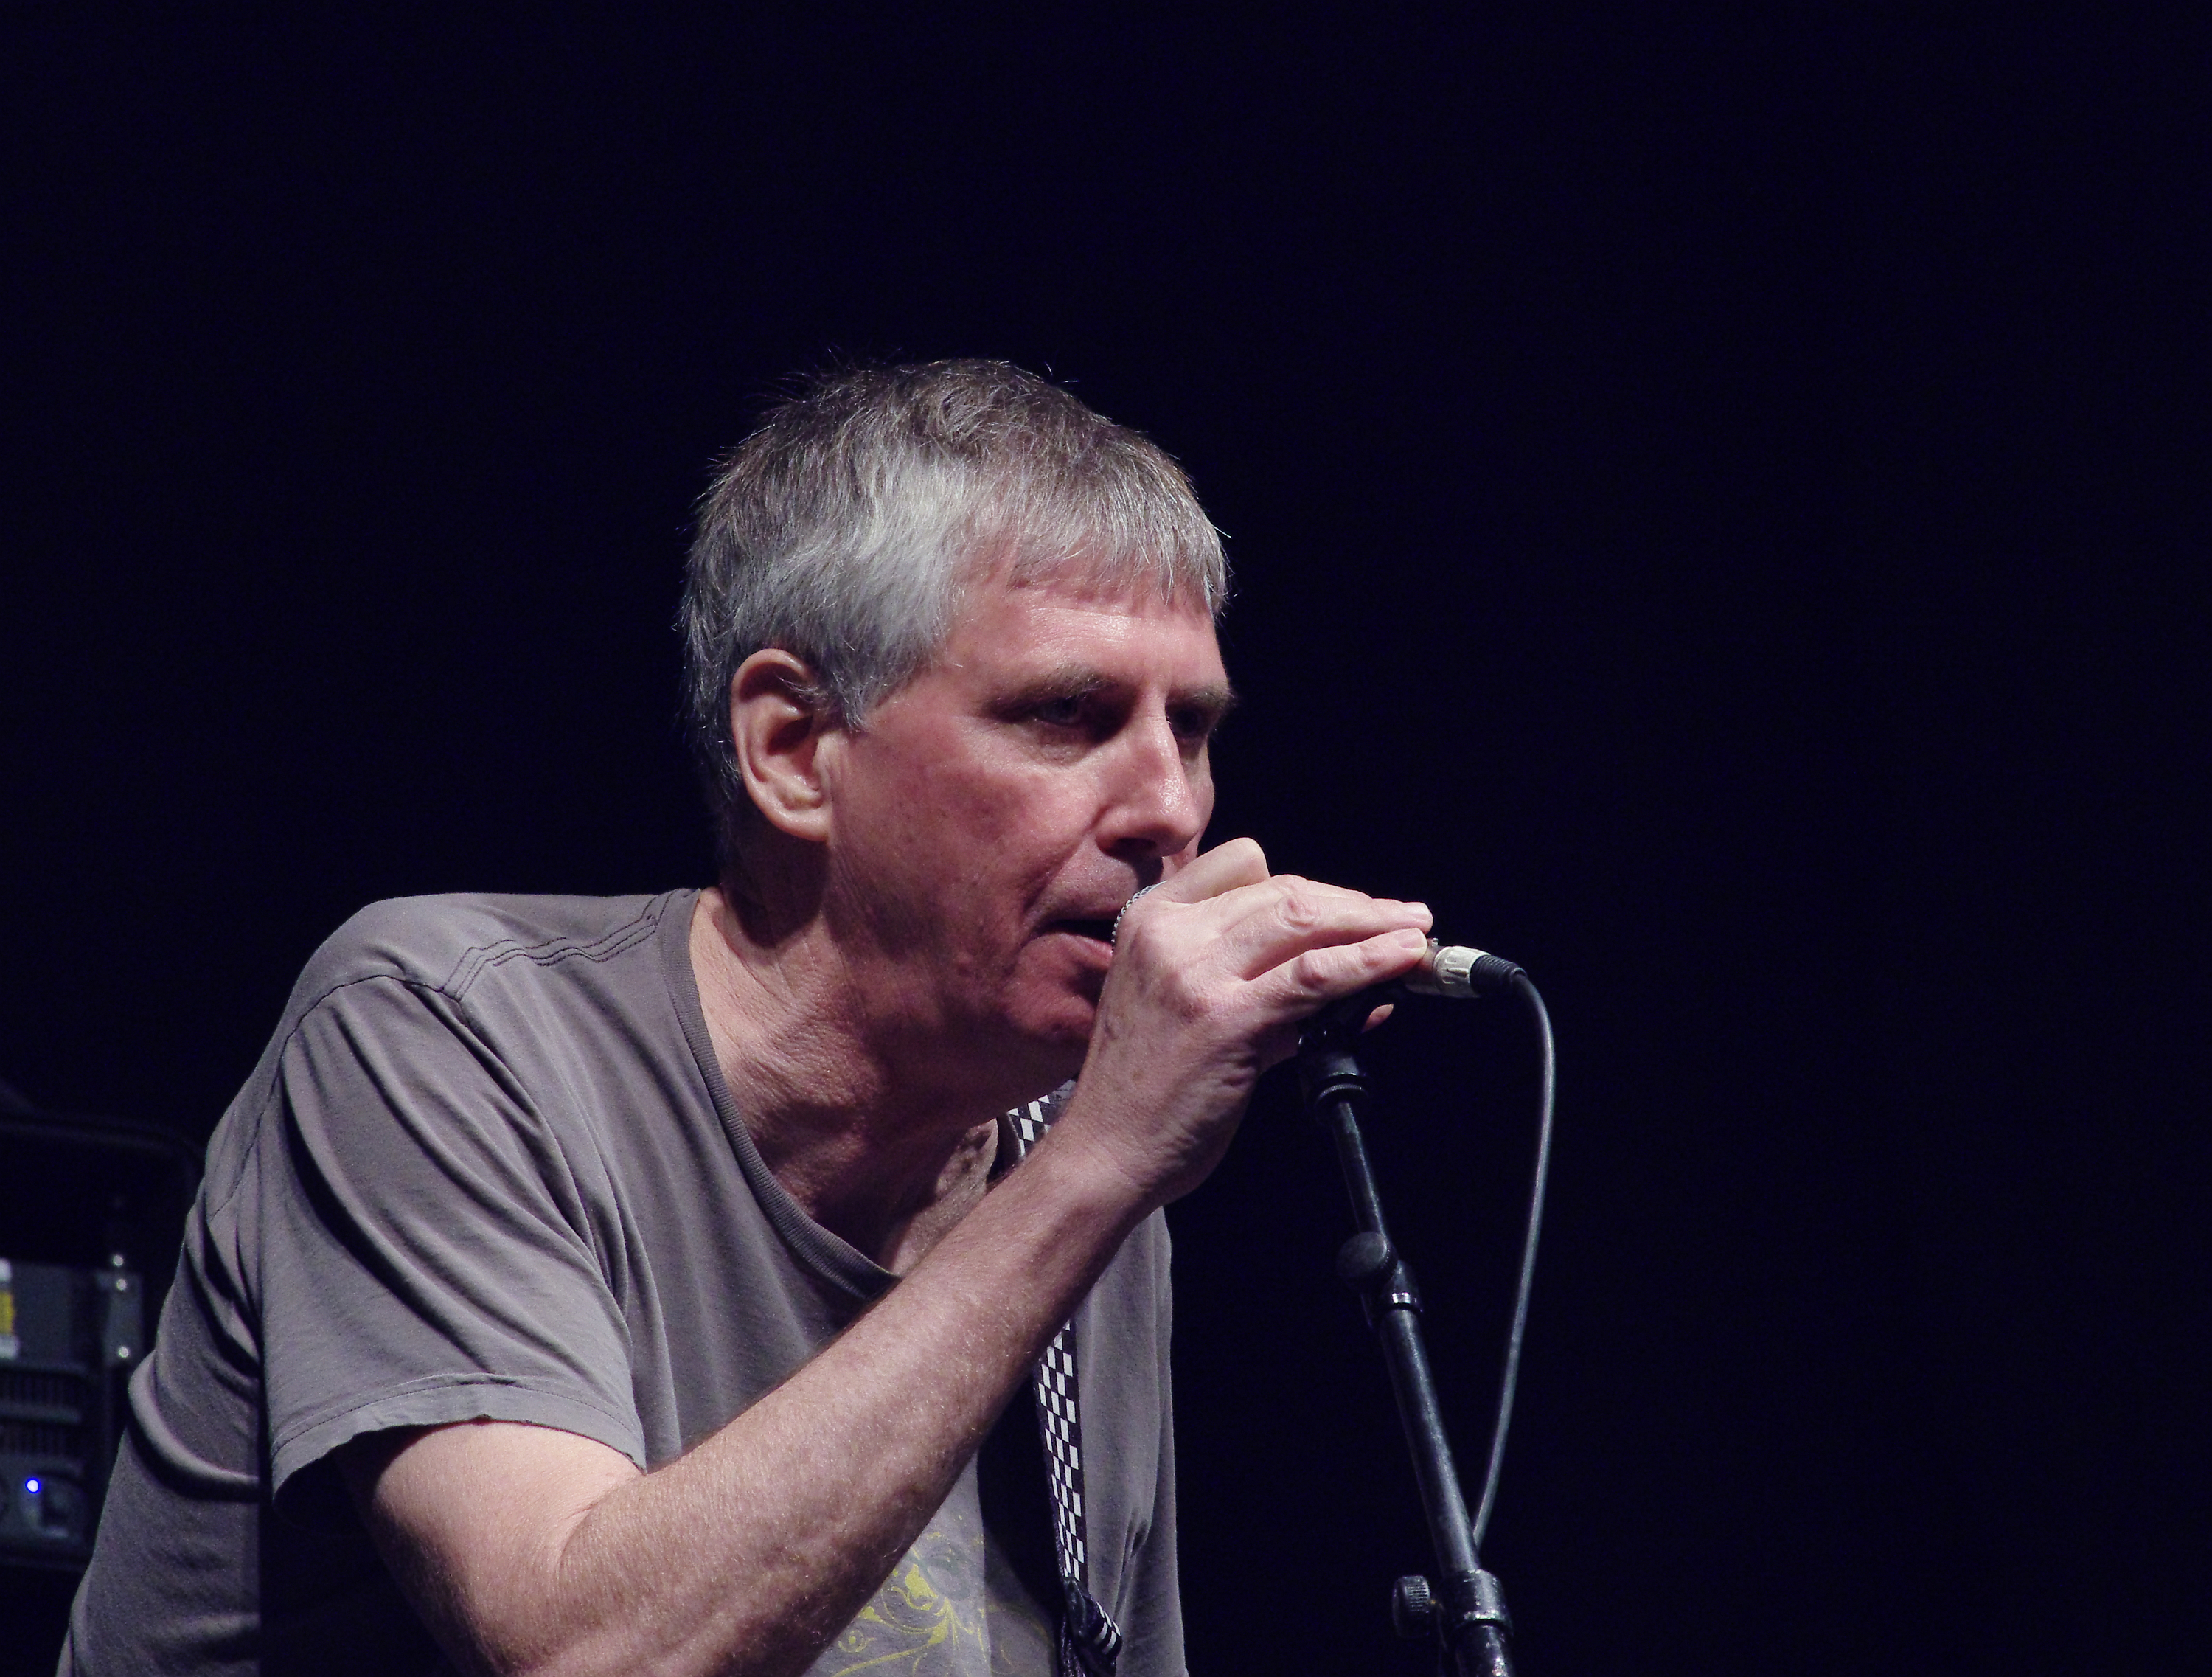 Greg_Ginn_(Black_Flag)_(Ruhrpott_Rodeo_2013)